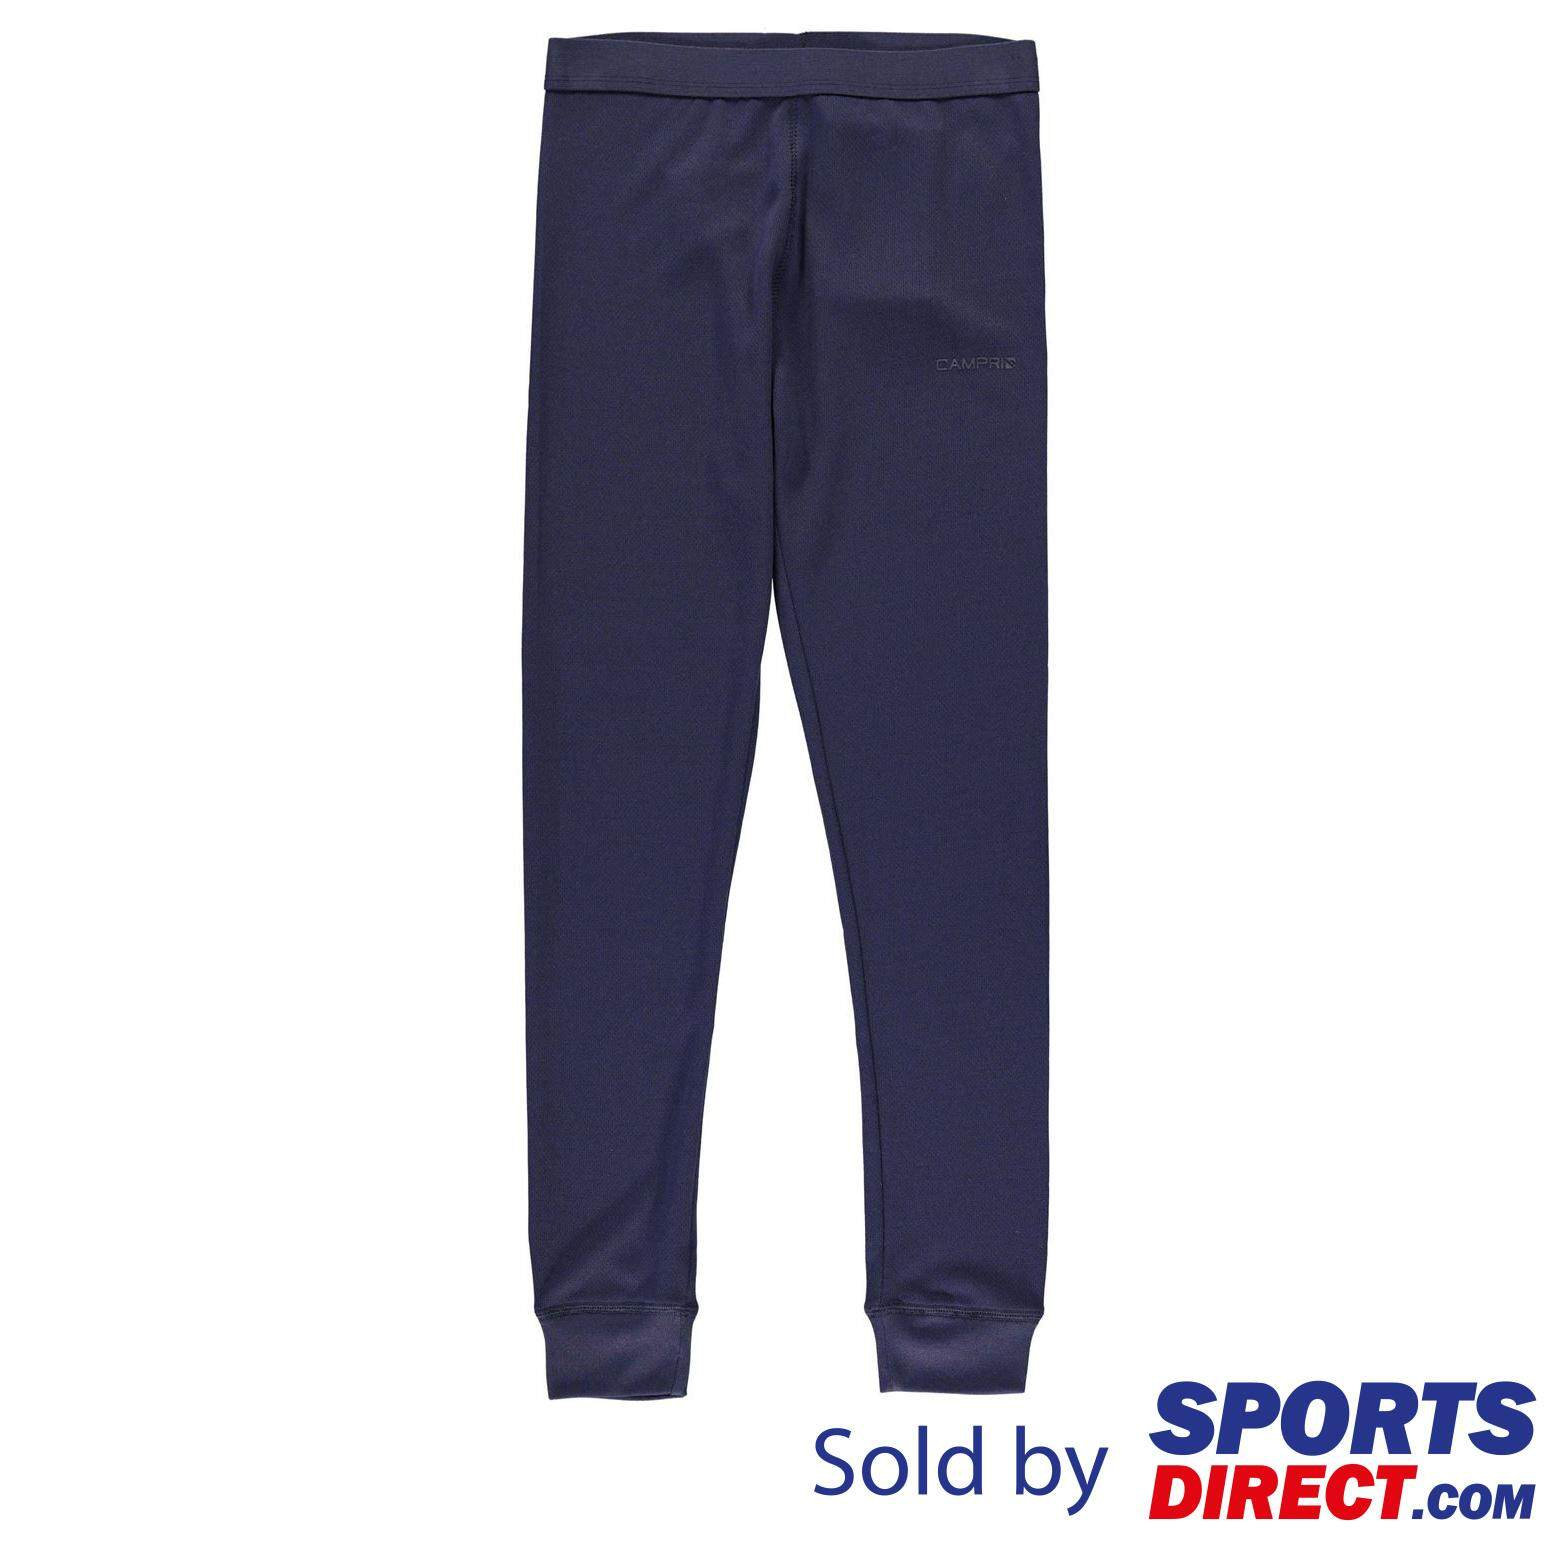 Campri Thermal Baselayer Pants Unisex Junior By Sports Direct Mst Sdn Bhd.